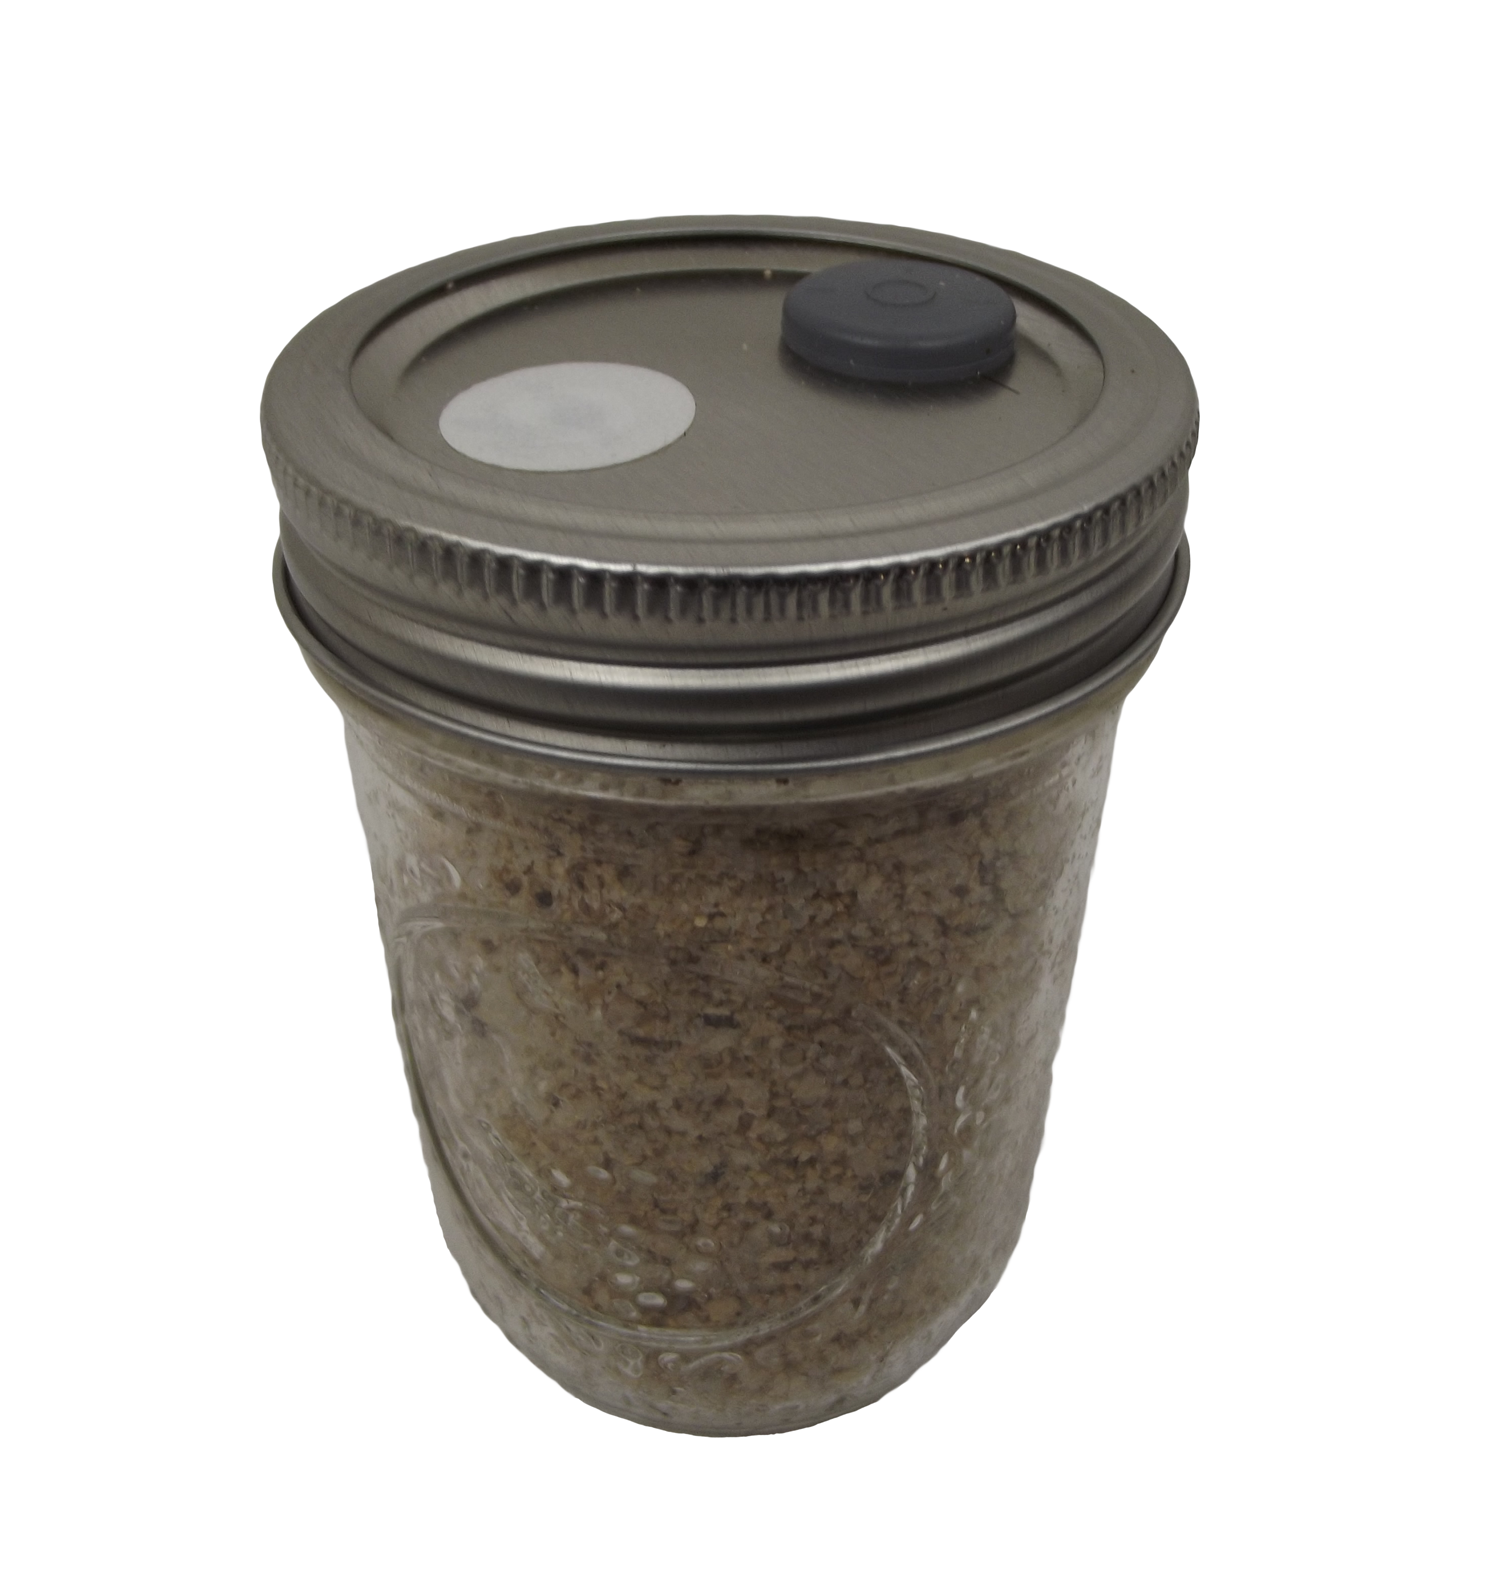 BRF JARS ™ Brown Rice Flour Based Mushroom Substrate